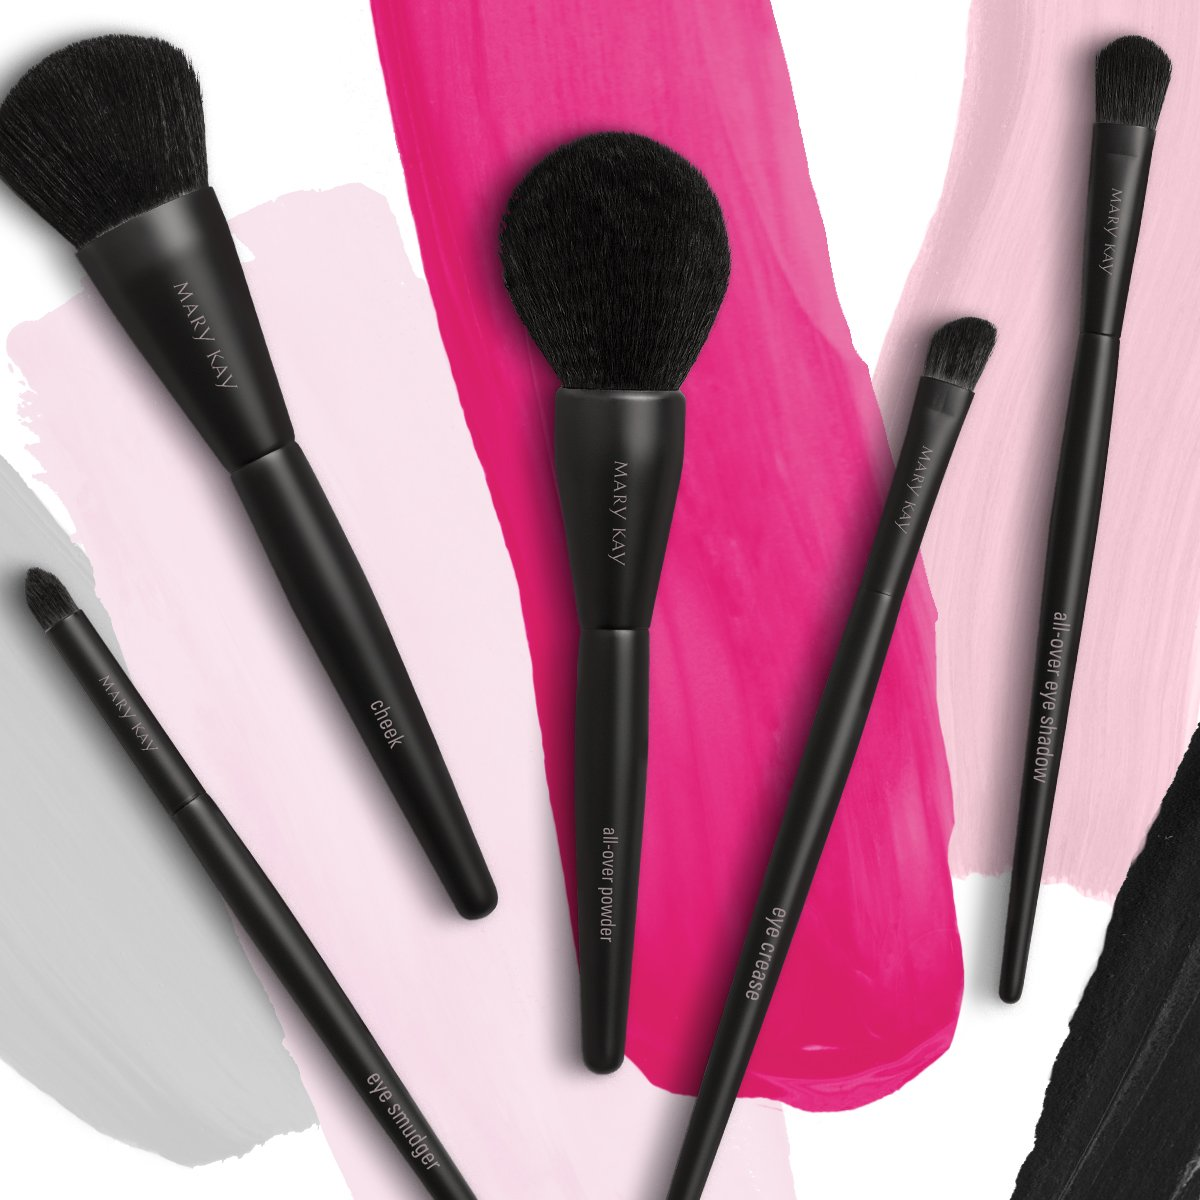 The New Marykay Makeup Brushes Feature